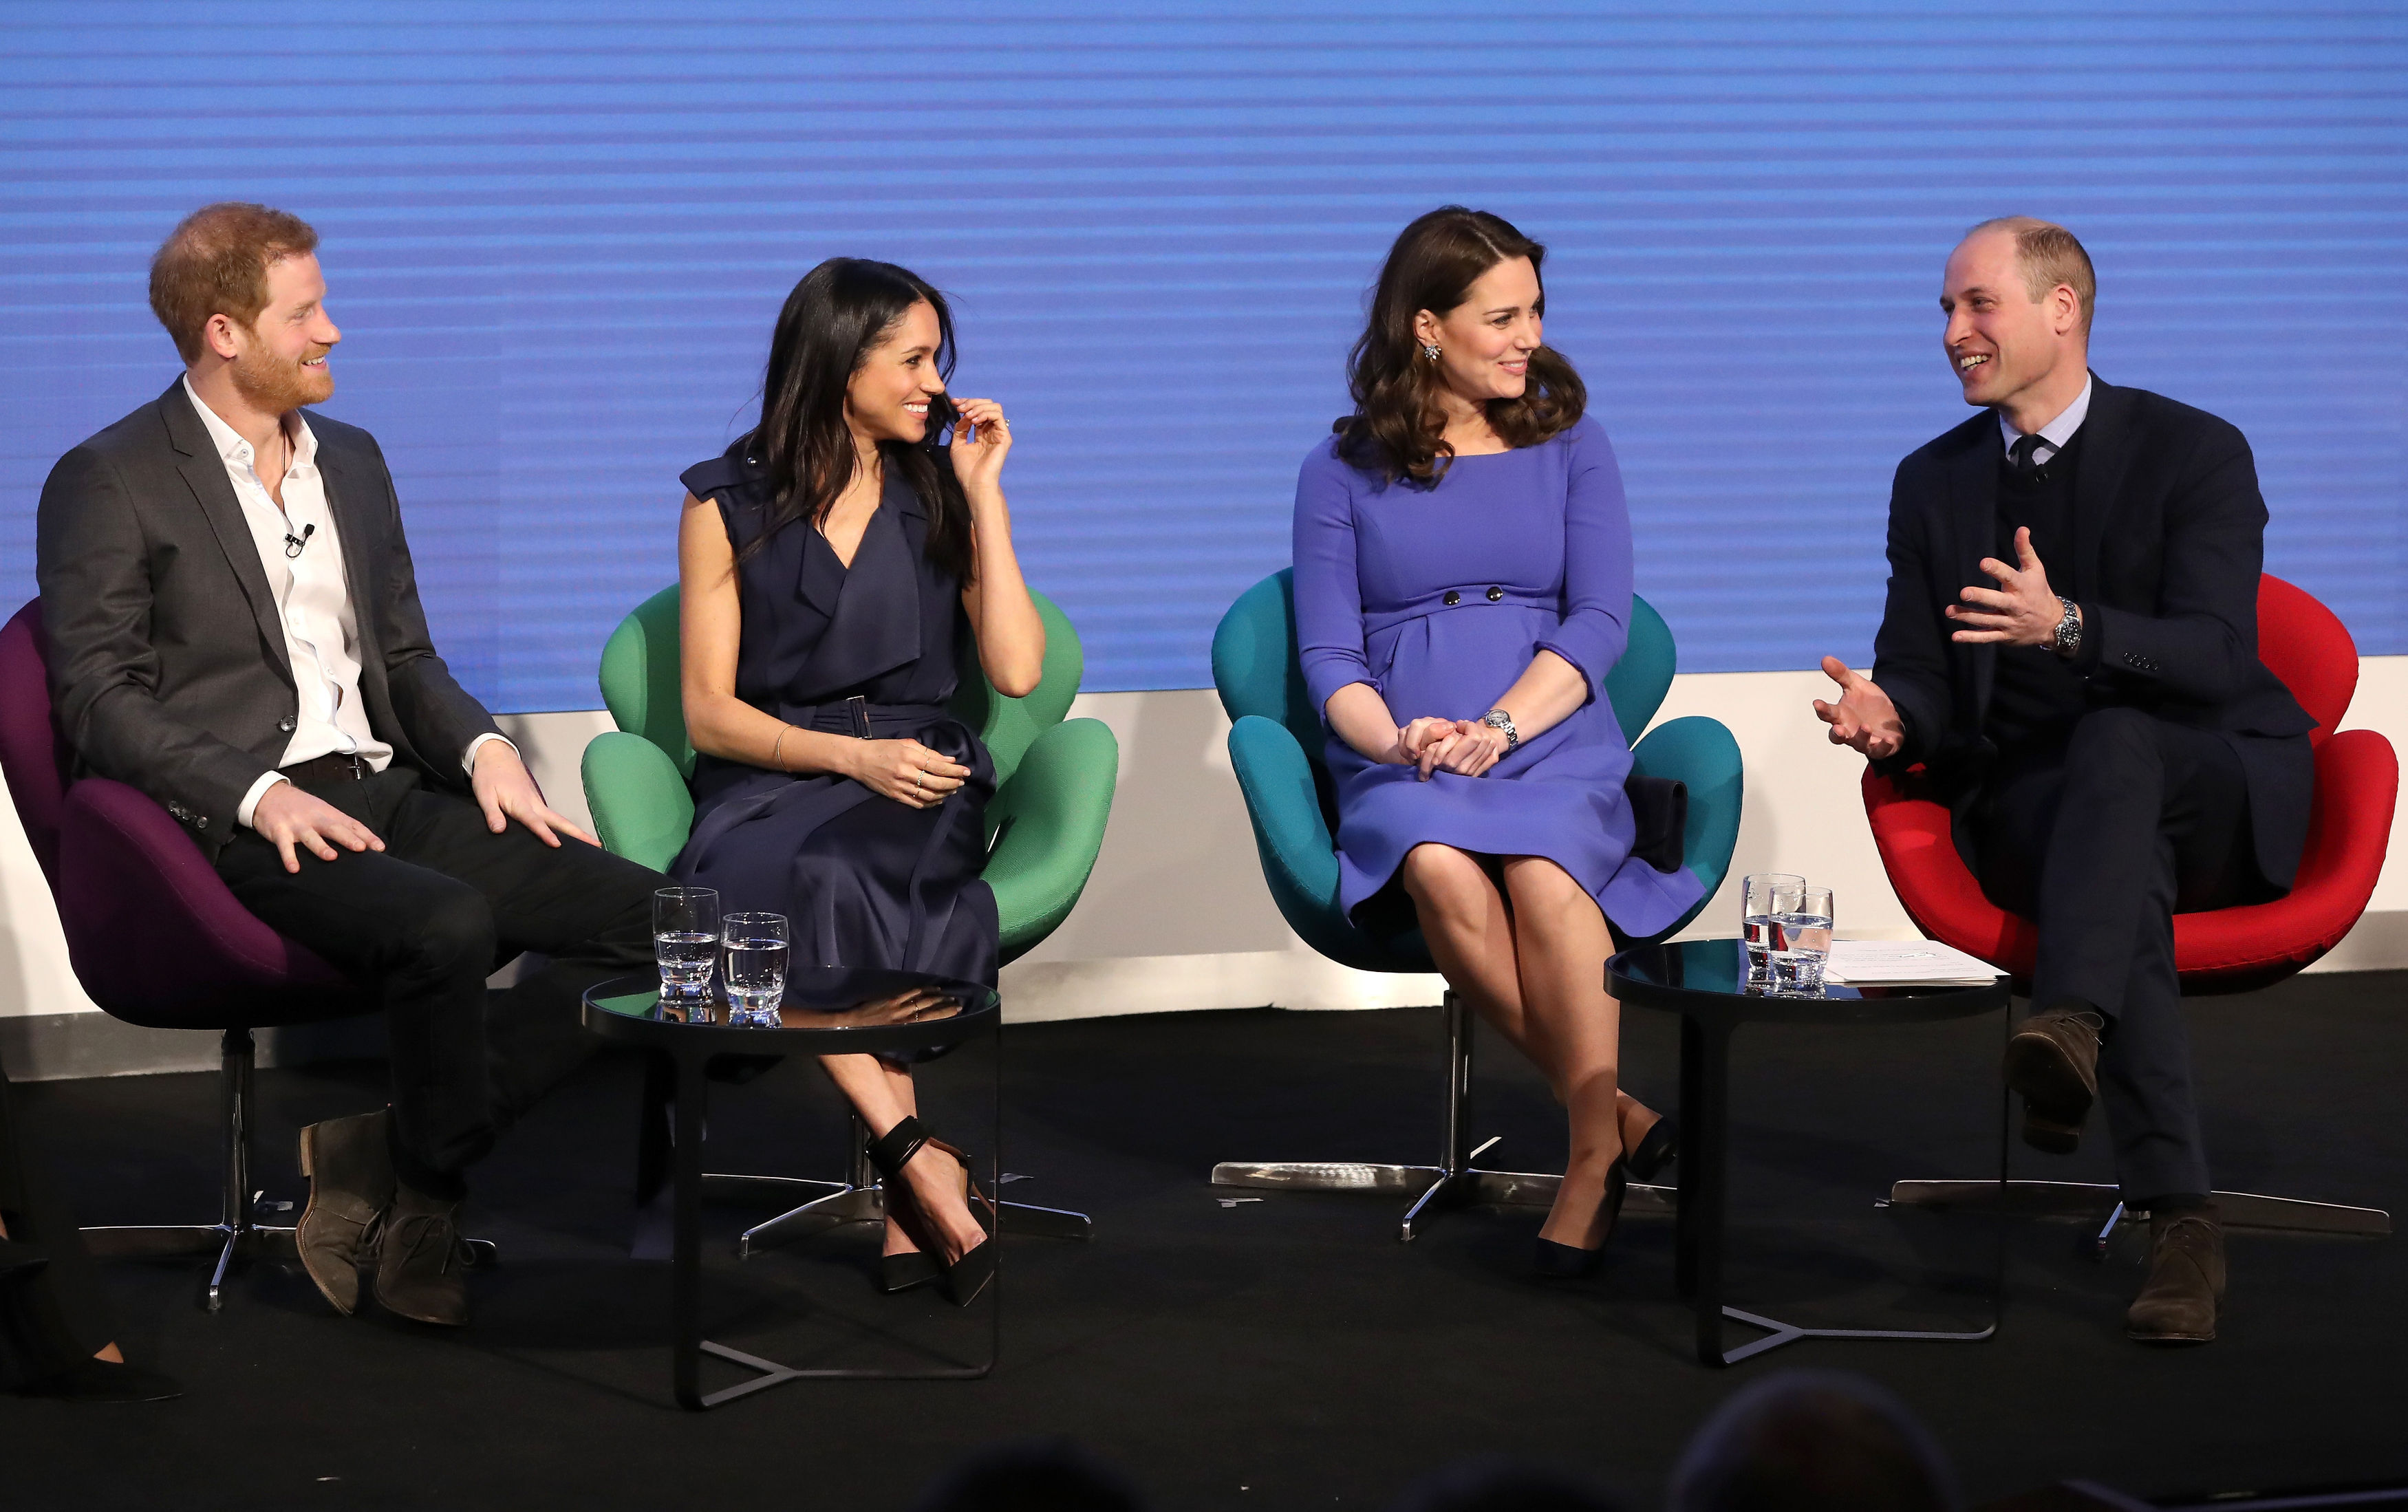 Meghan Markle Addresses #MeToo and Empowering Women: 'There's No Better Time'